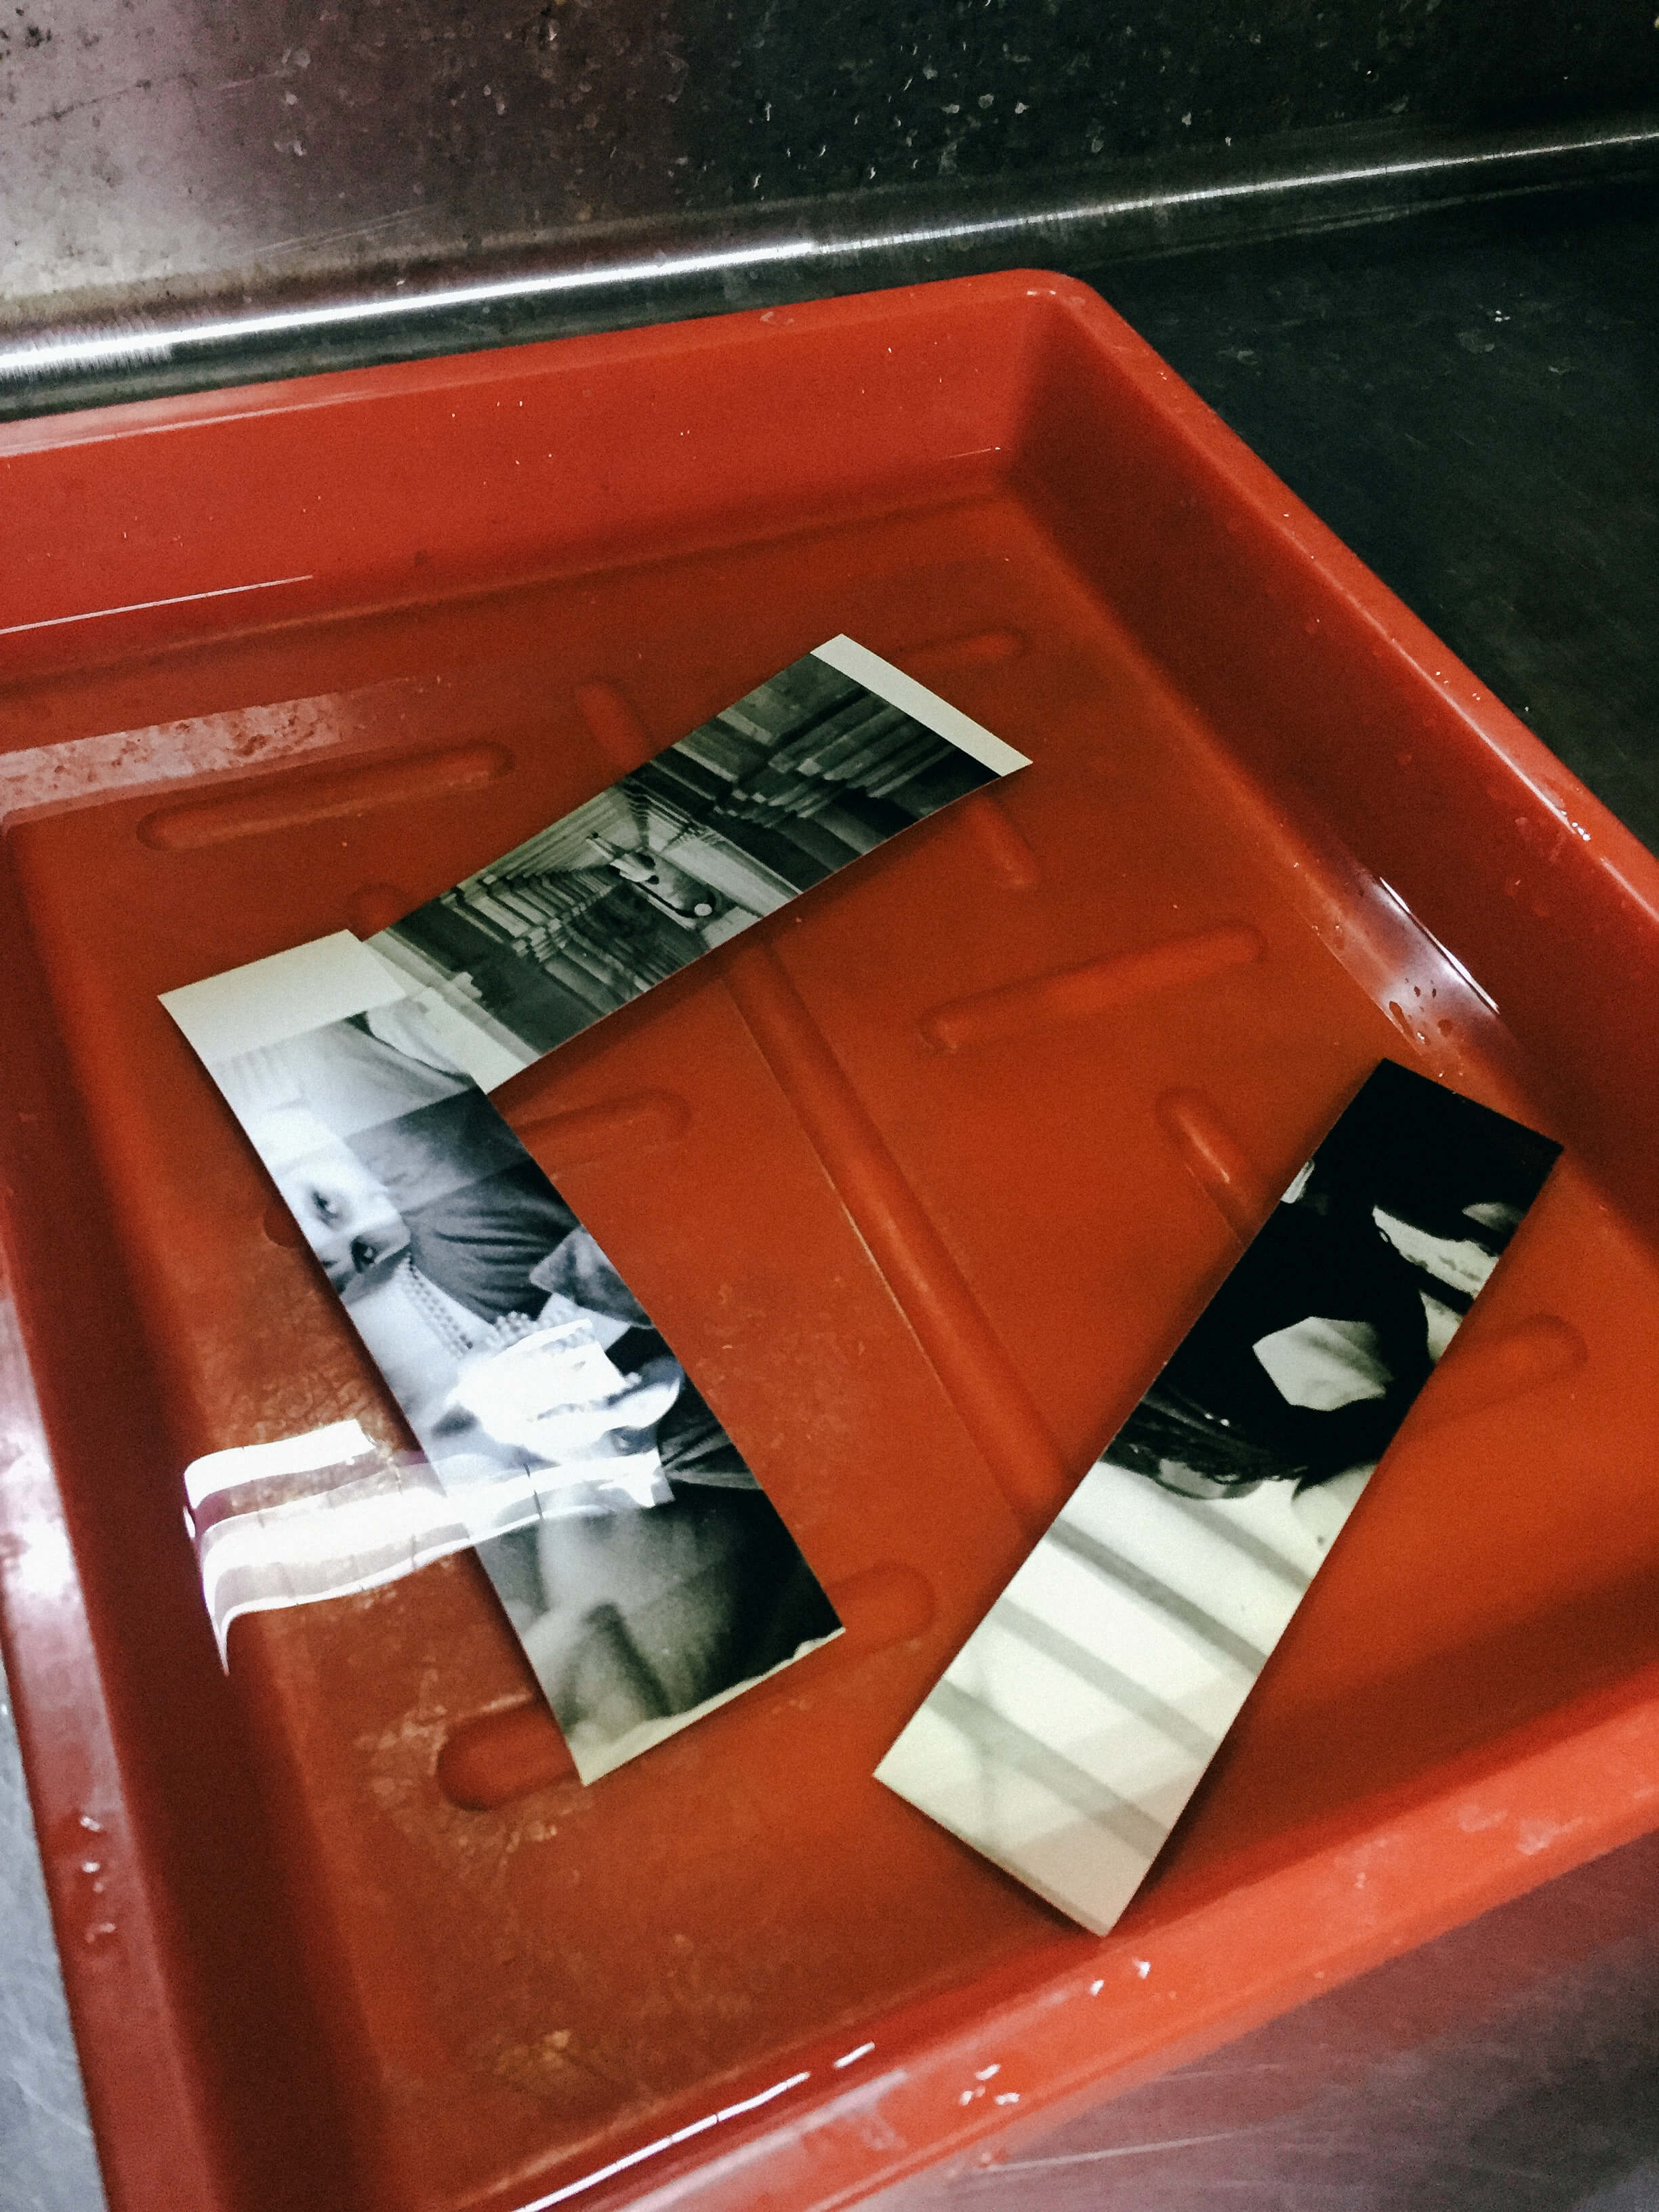 darkroom-print-printing-of-my-work-on-photo-paper-black-and-white-bw-film-process-develop-test-papers-adjust-time